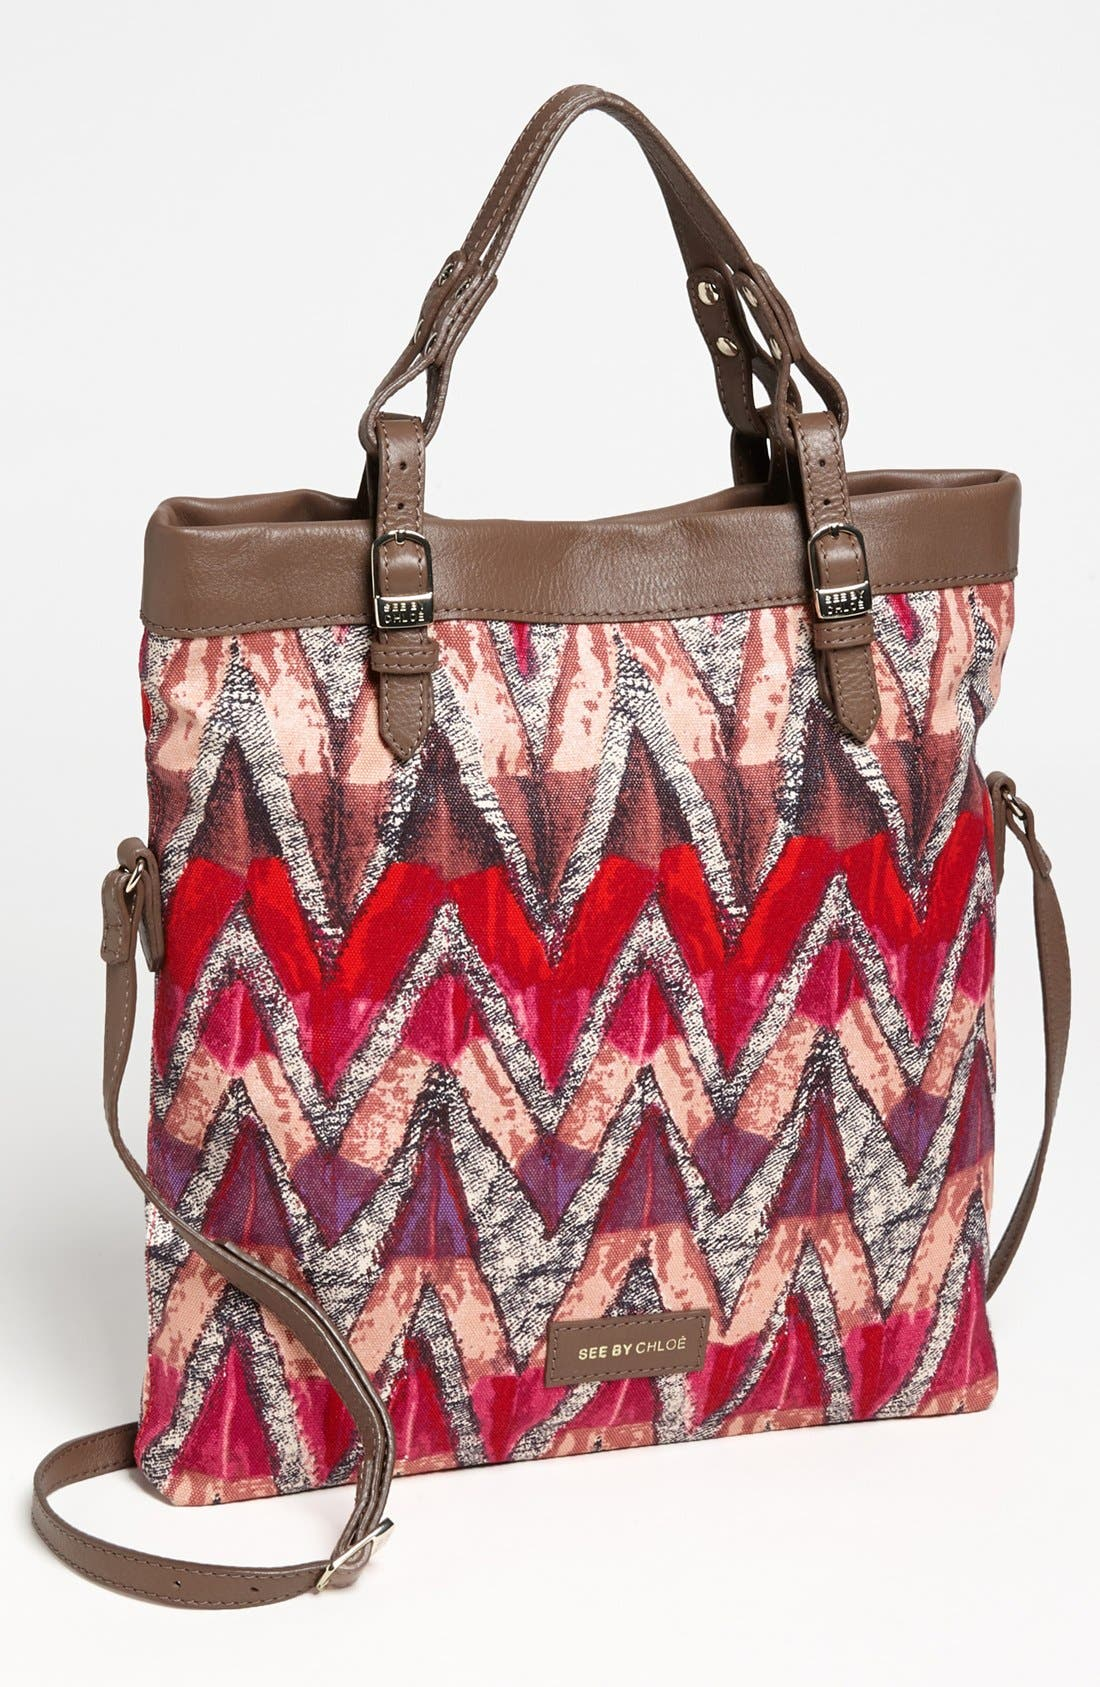 Main Image - See by Chloé 'Agathe' Double Function Tote, Medium